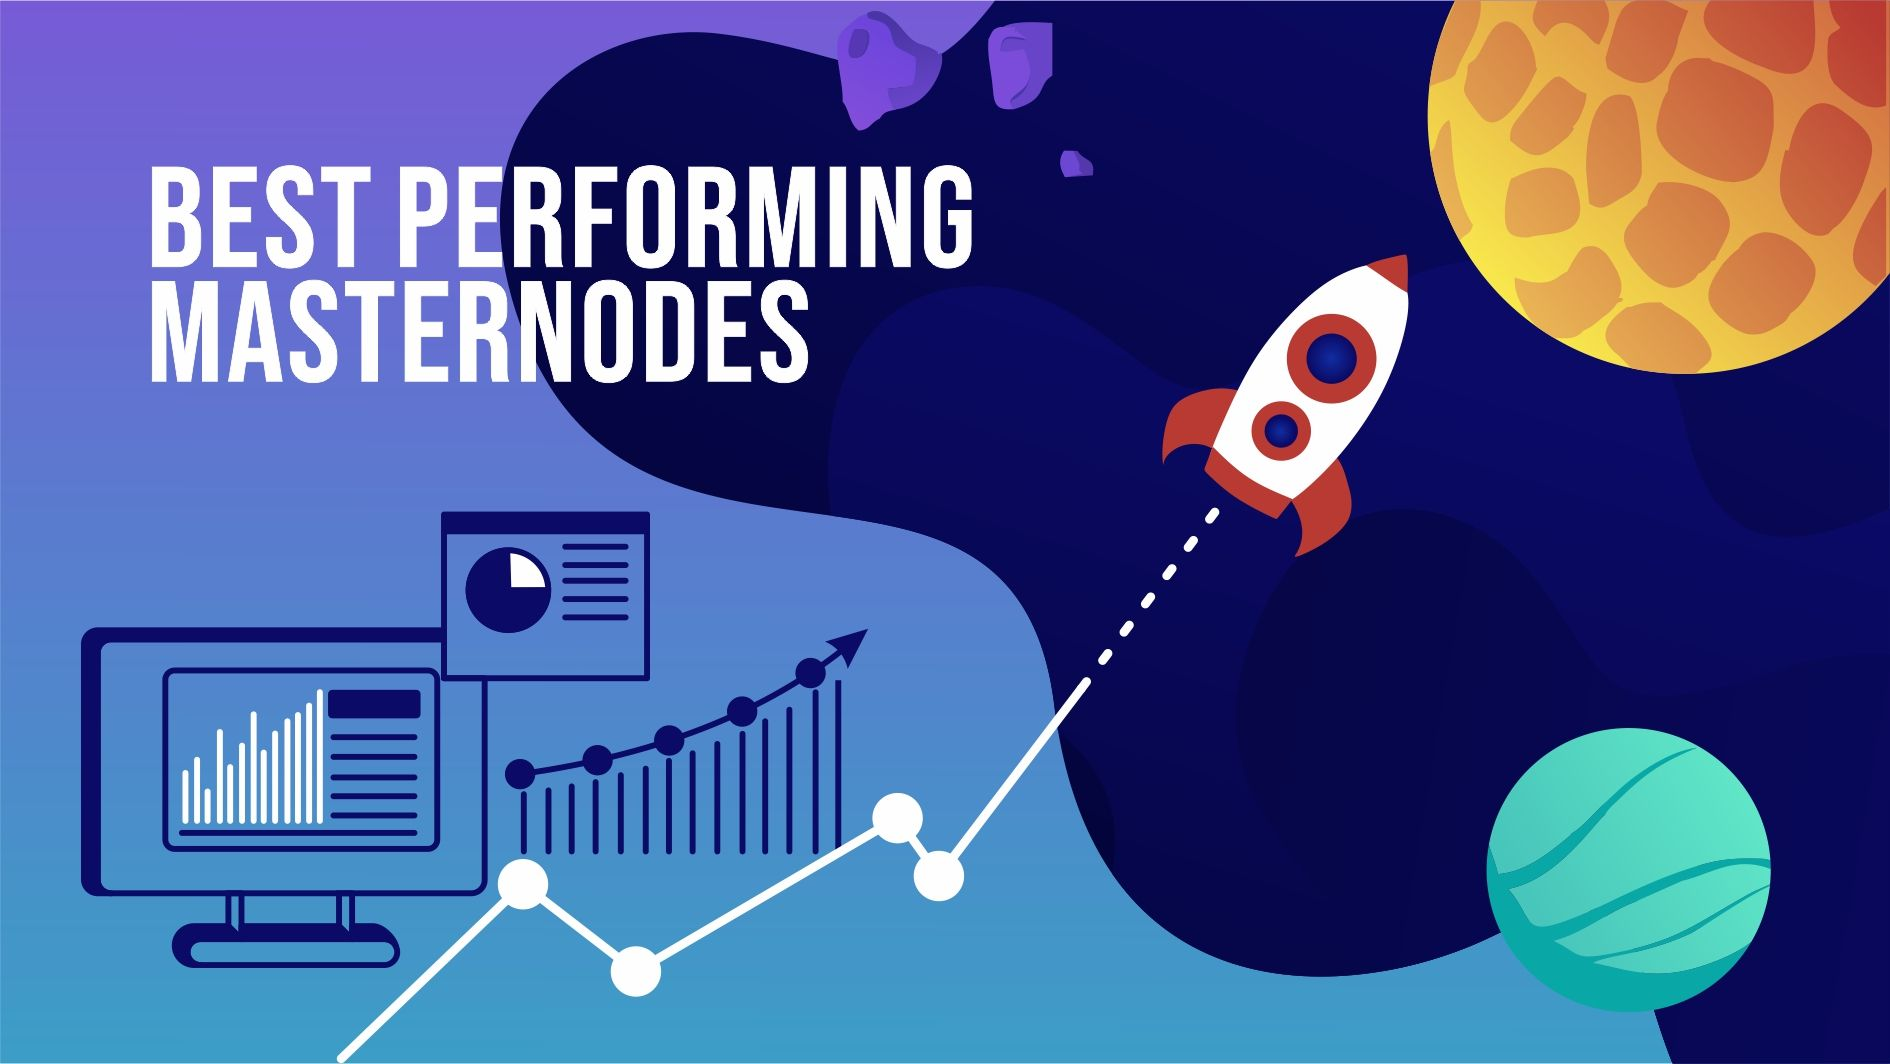 Best Performing Masternodes #Week6